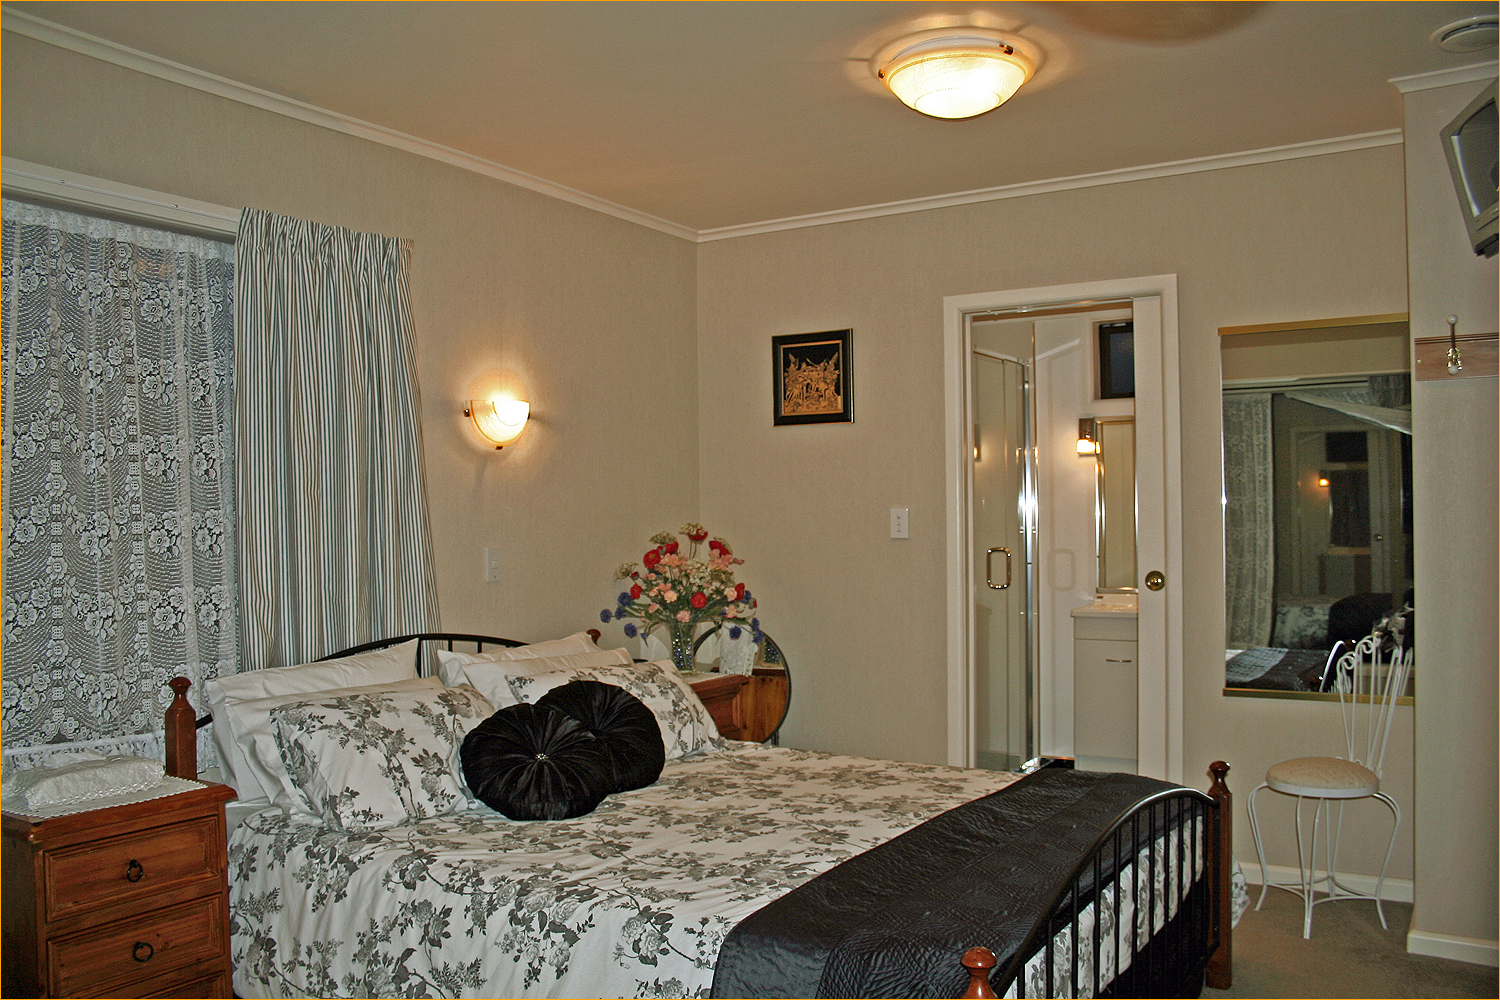 Nest Haven Bed and Breakfast accommodation in Napier, New Zealand